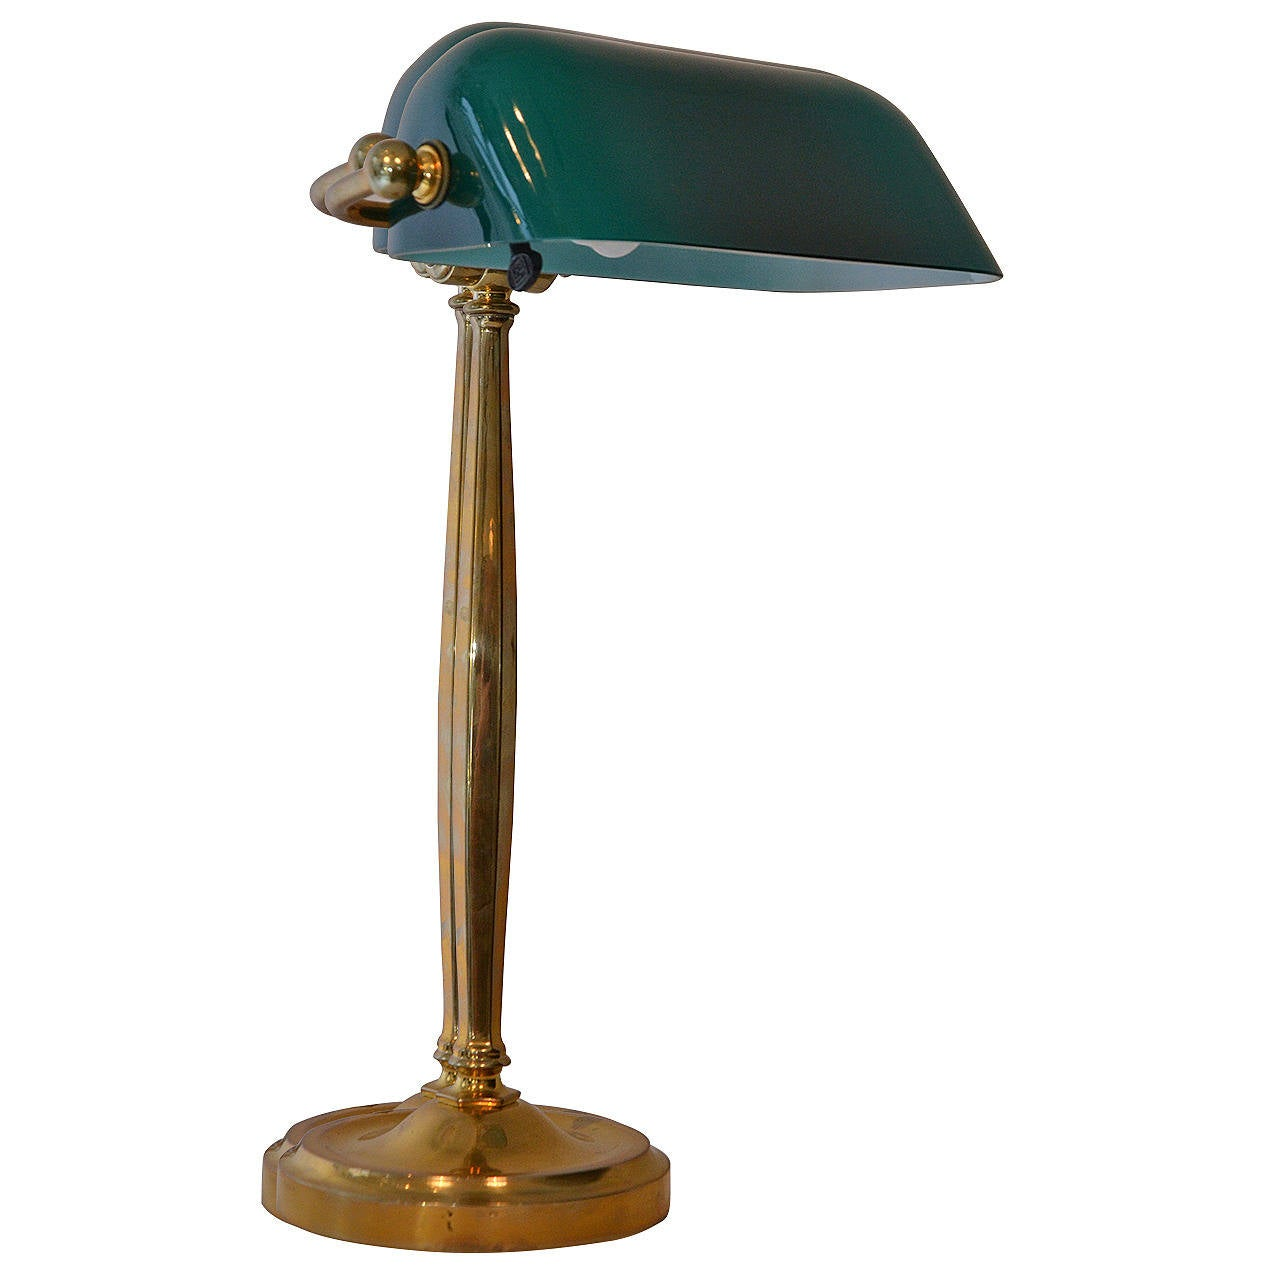 Brass Table Lamp With Original Green Glasshade For Sale At